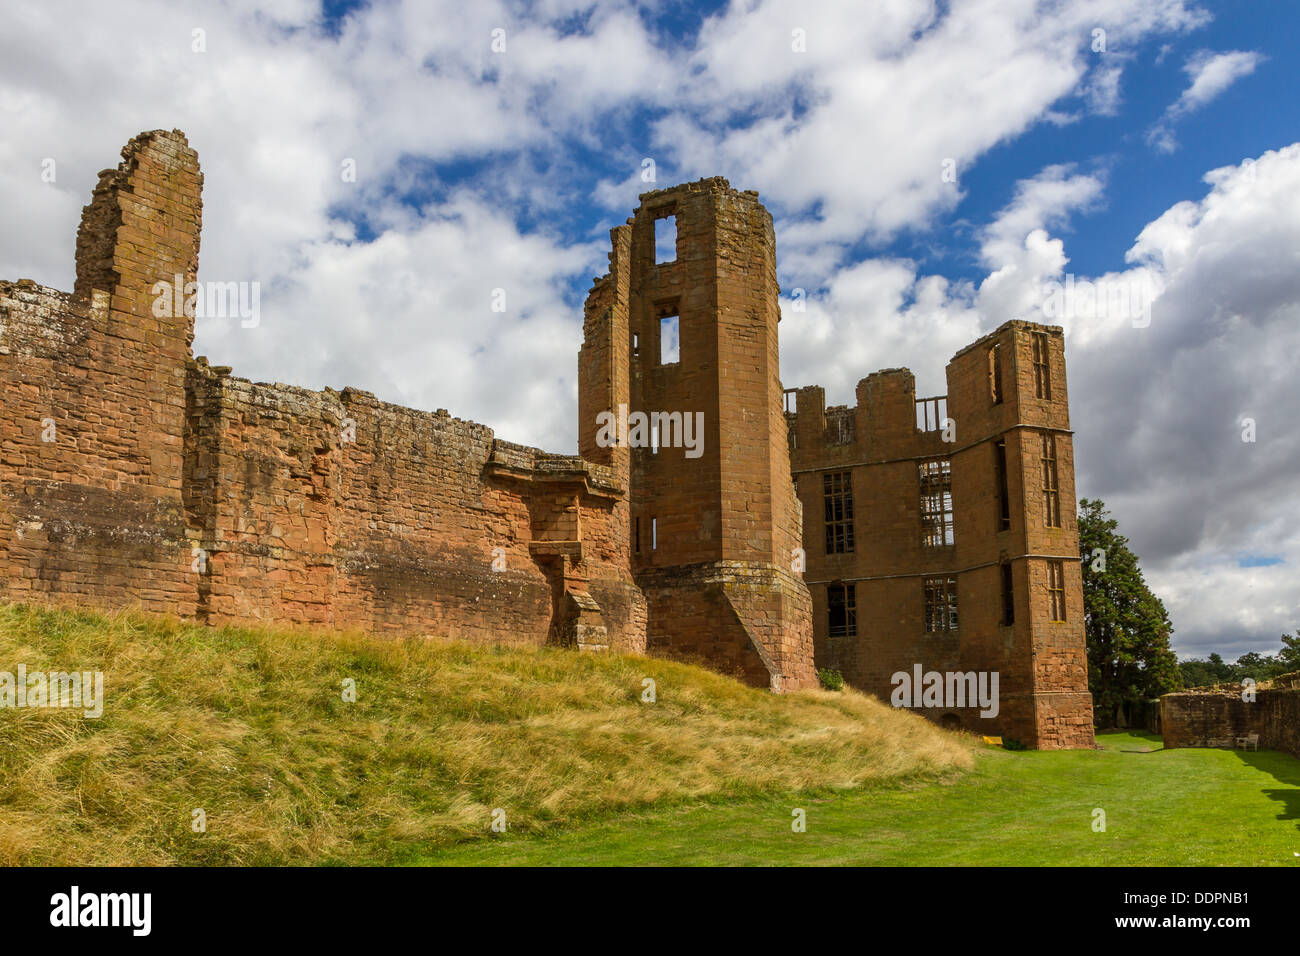 The ruins of the State Apartments and Leicesters Building at Kenilworth Castle - Stock Image